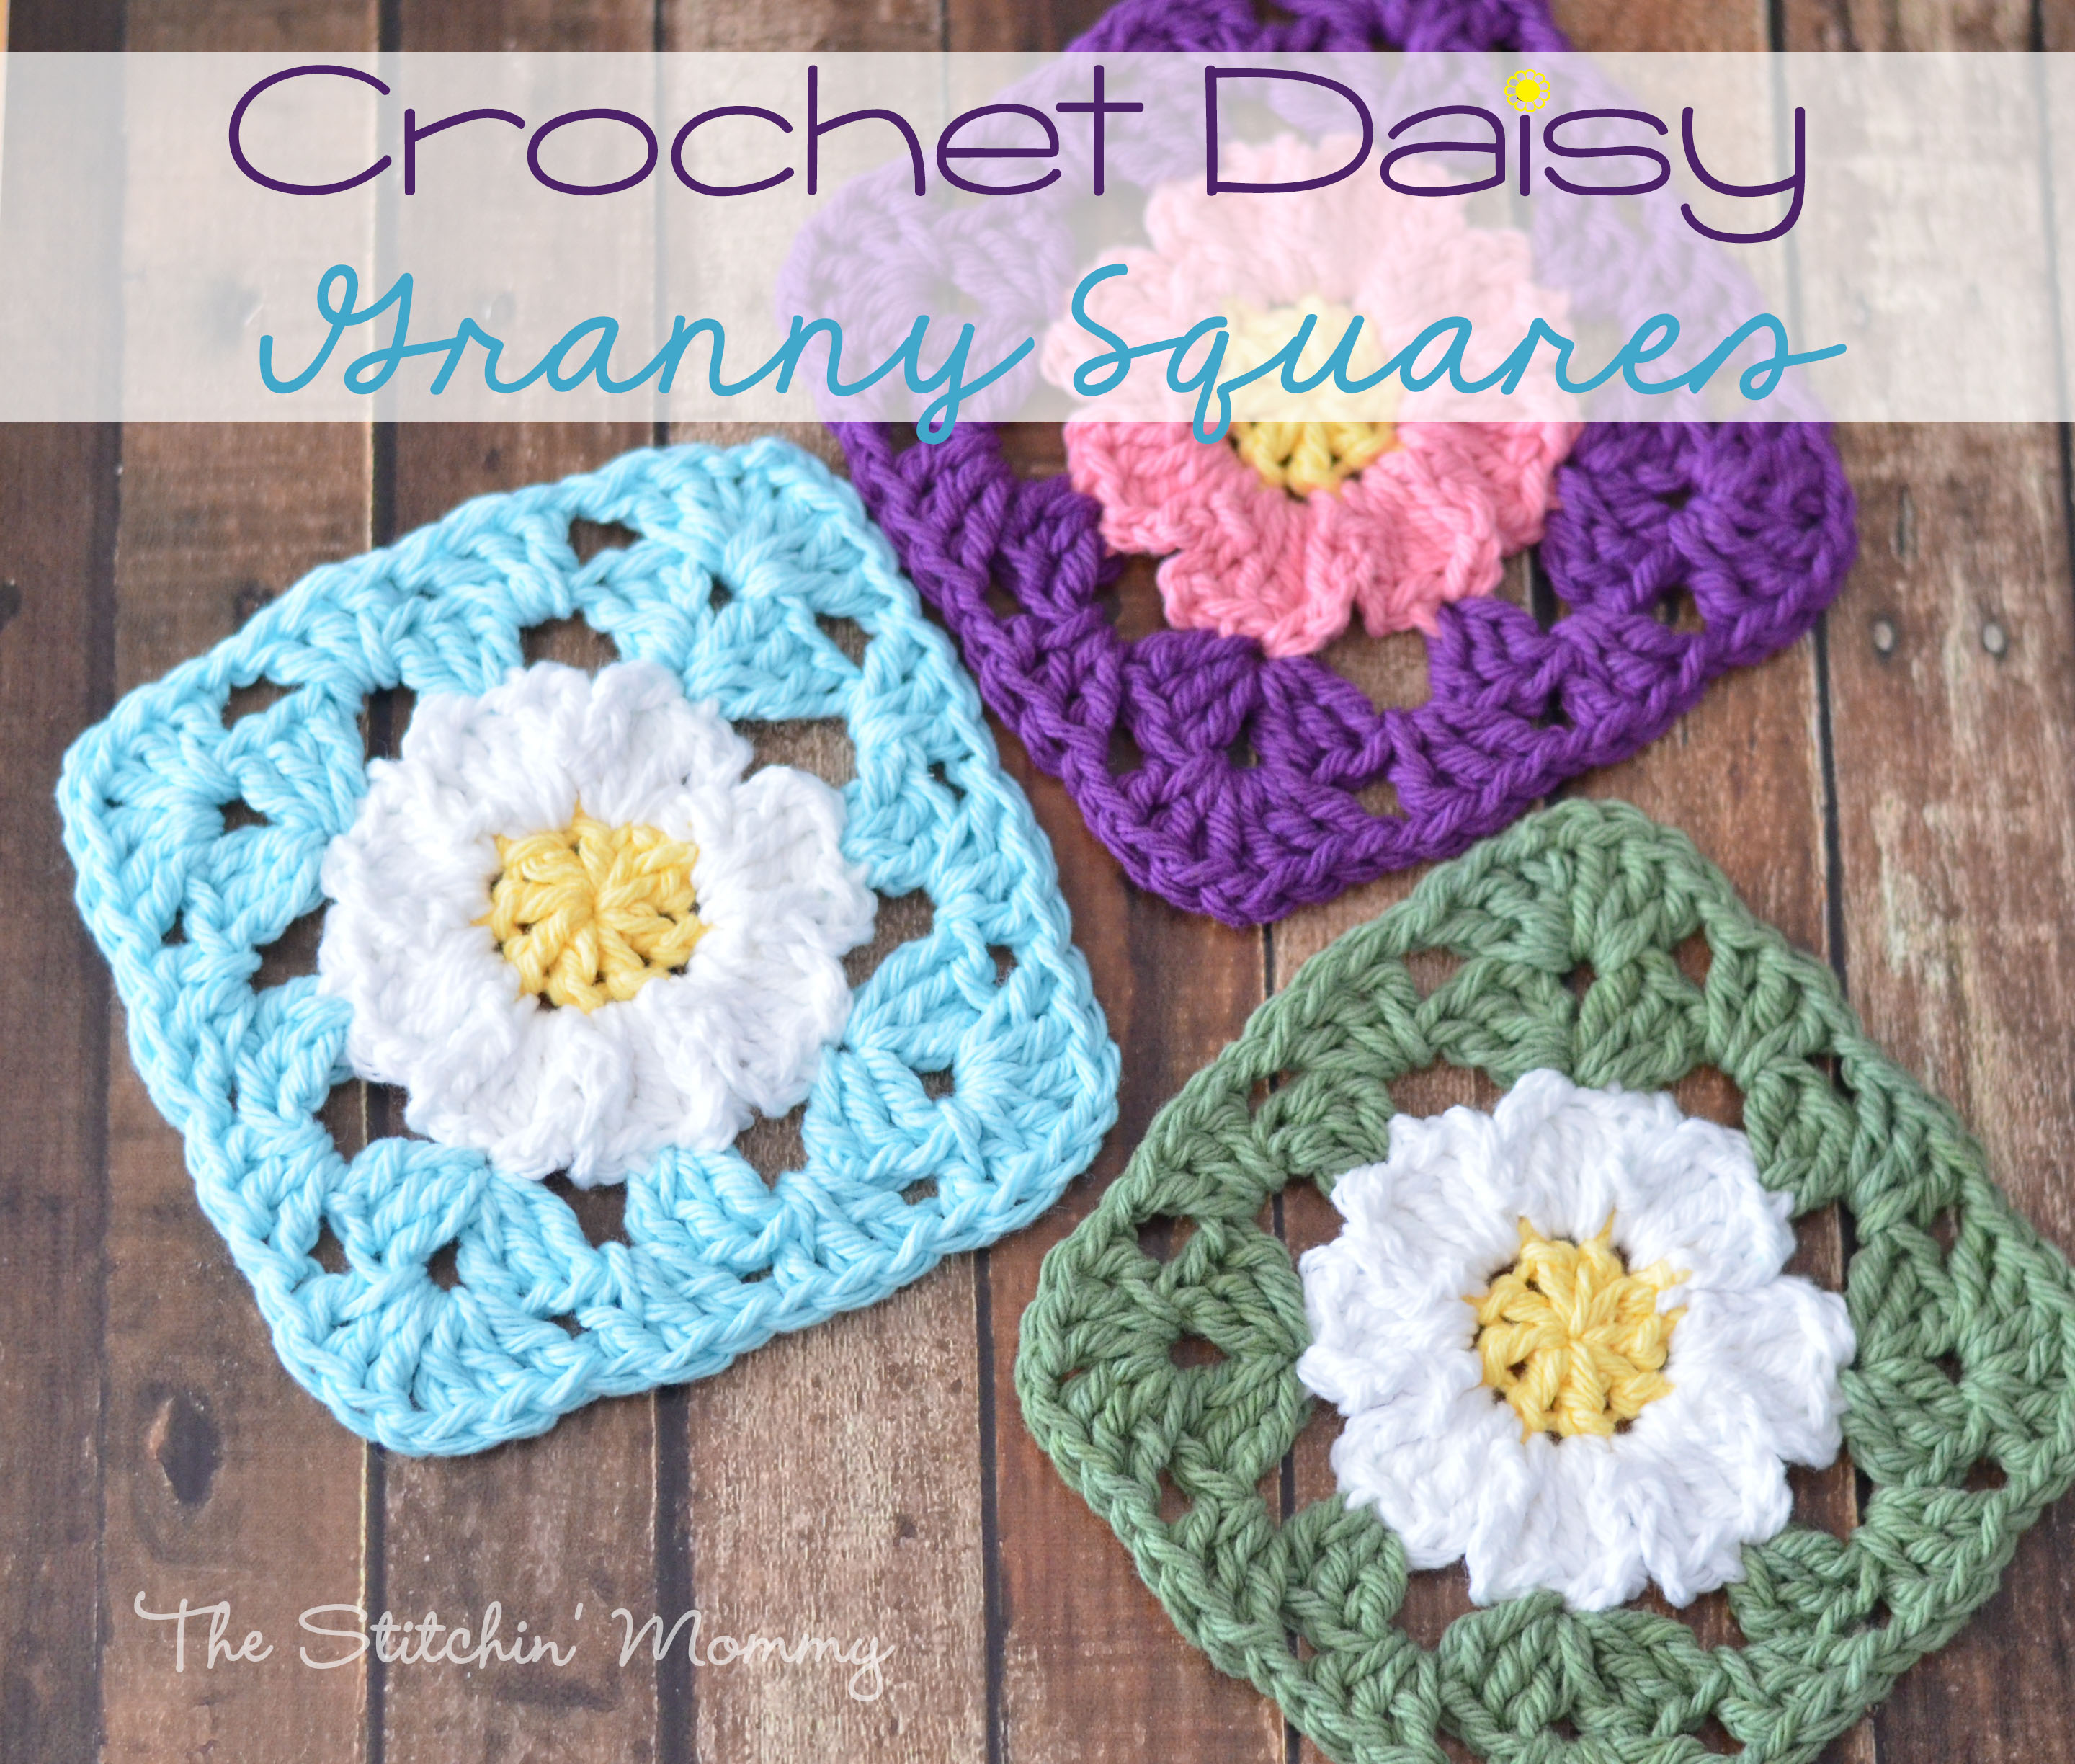 Free Crochet Granny Square Clothing Patterns : Crochet Daisy Granny Squares - The Stitchin Mommy